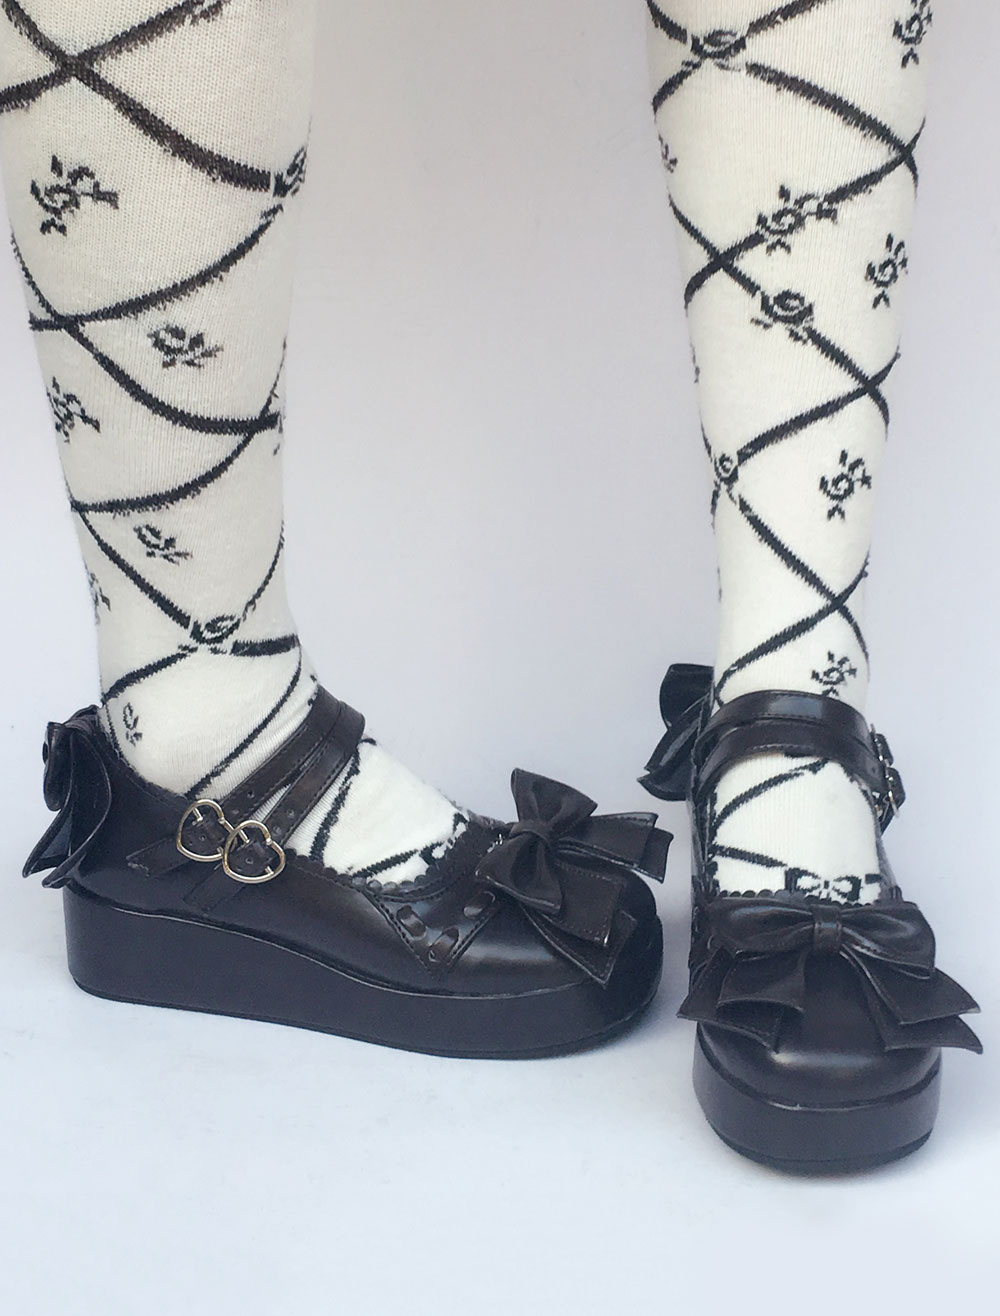 Lolita Wedge Shoes Double Strap Bow Sweet Lolita Shoes